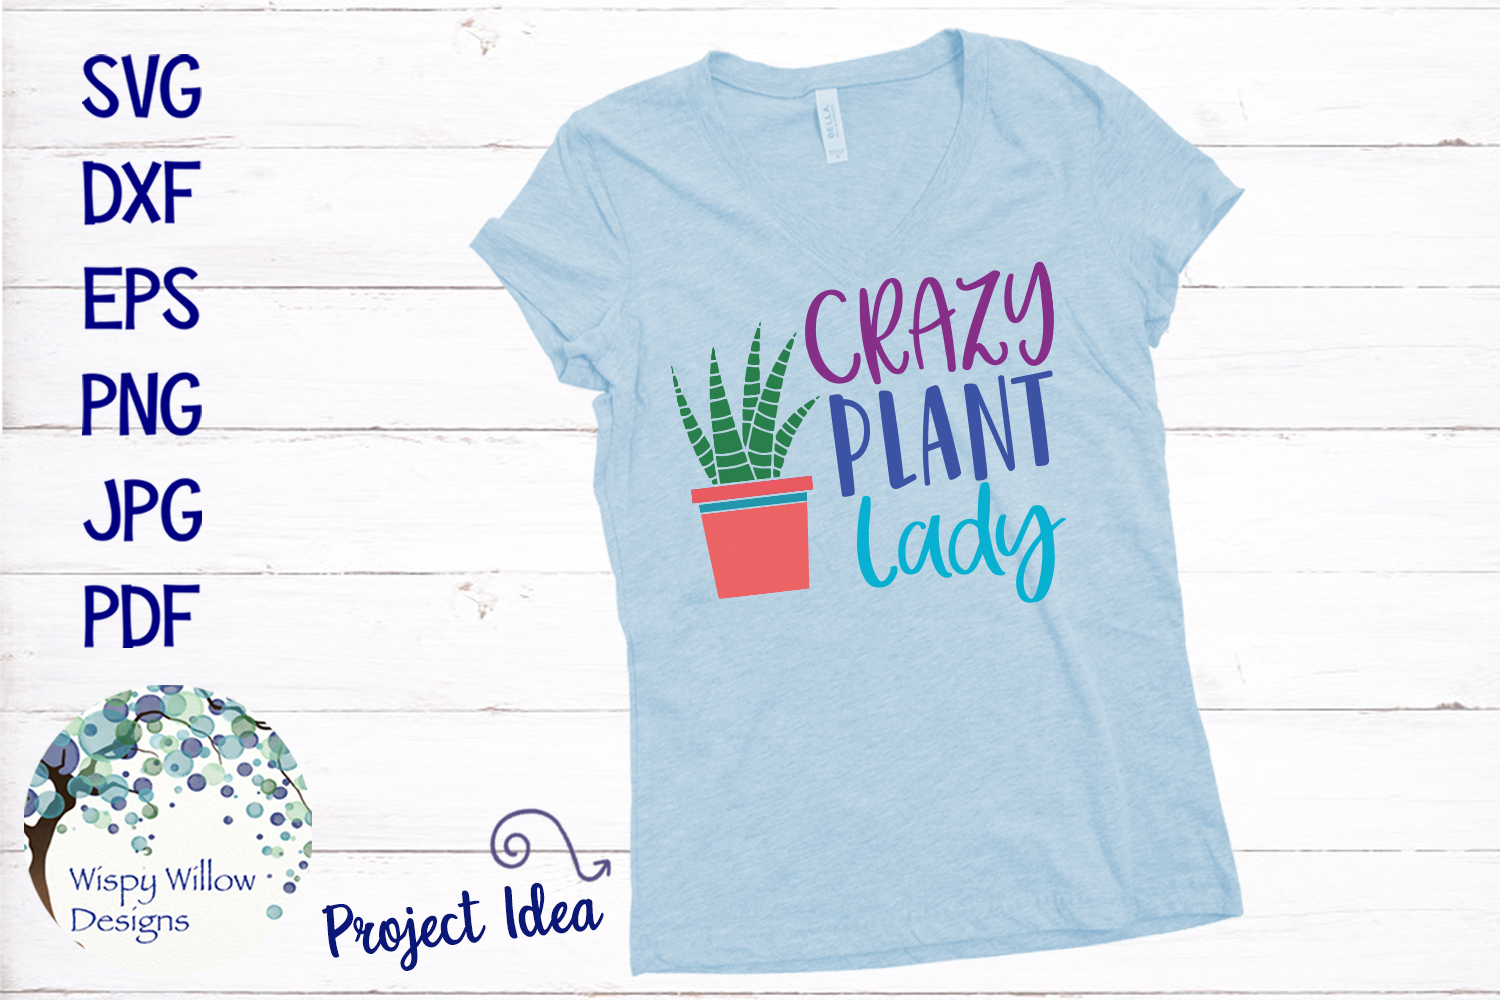 Crazy Plant Lady SVG example image 2